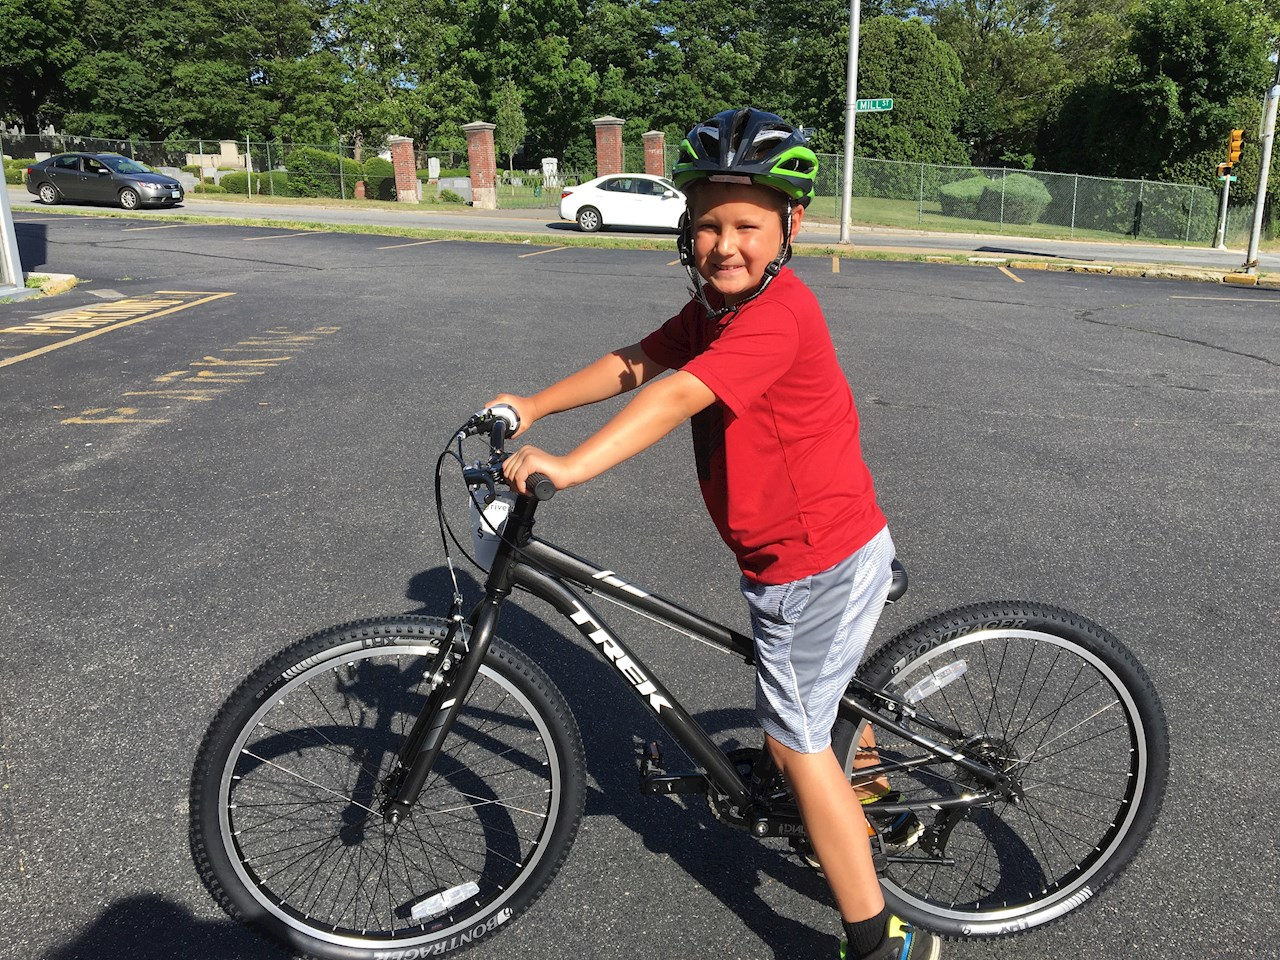 2016 Free Helmet and Bike Check Day winner of a free bike